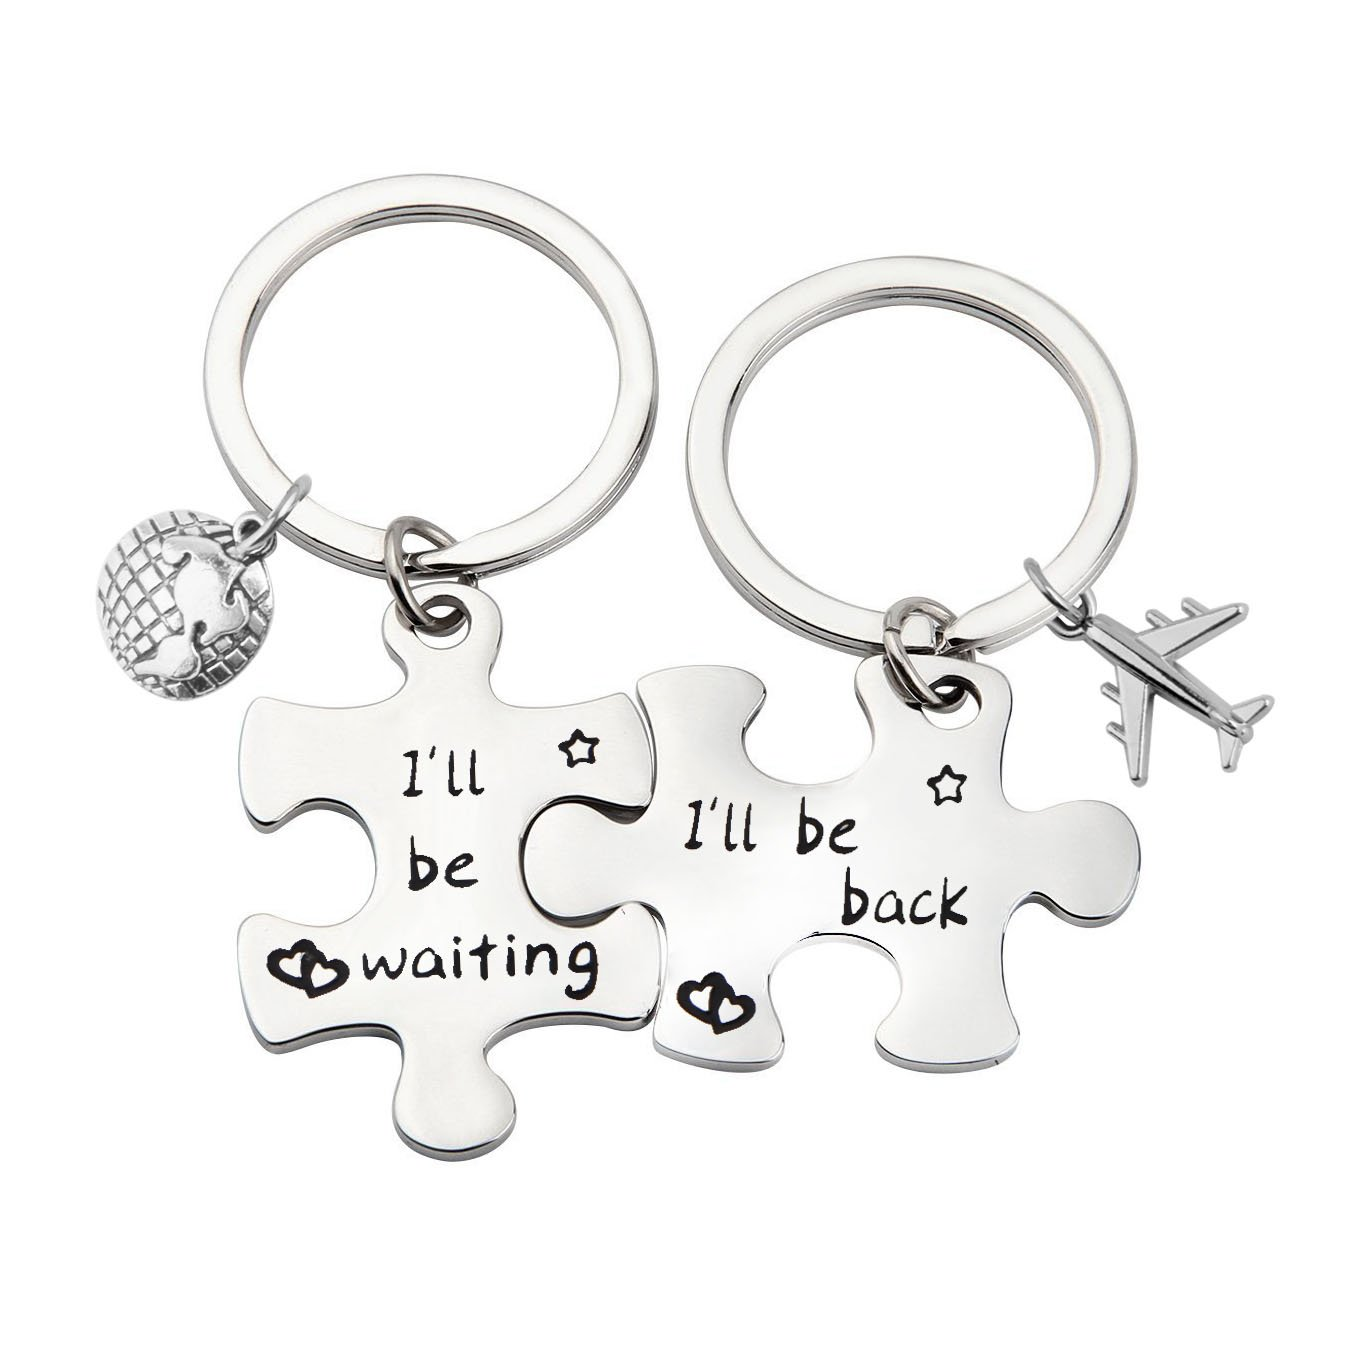 Puzzle Keychain Couples Set Long Distance Relationships Gifts For Couples Love Friendship Gift (Silver)